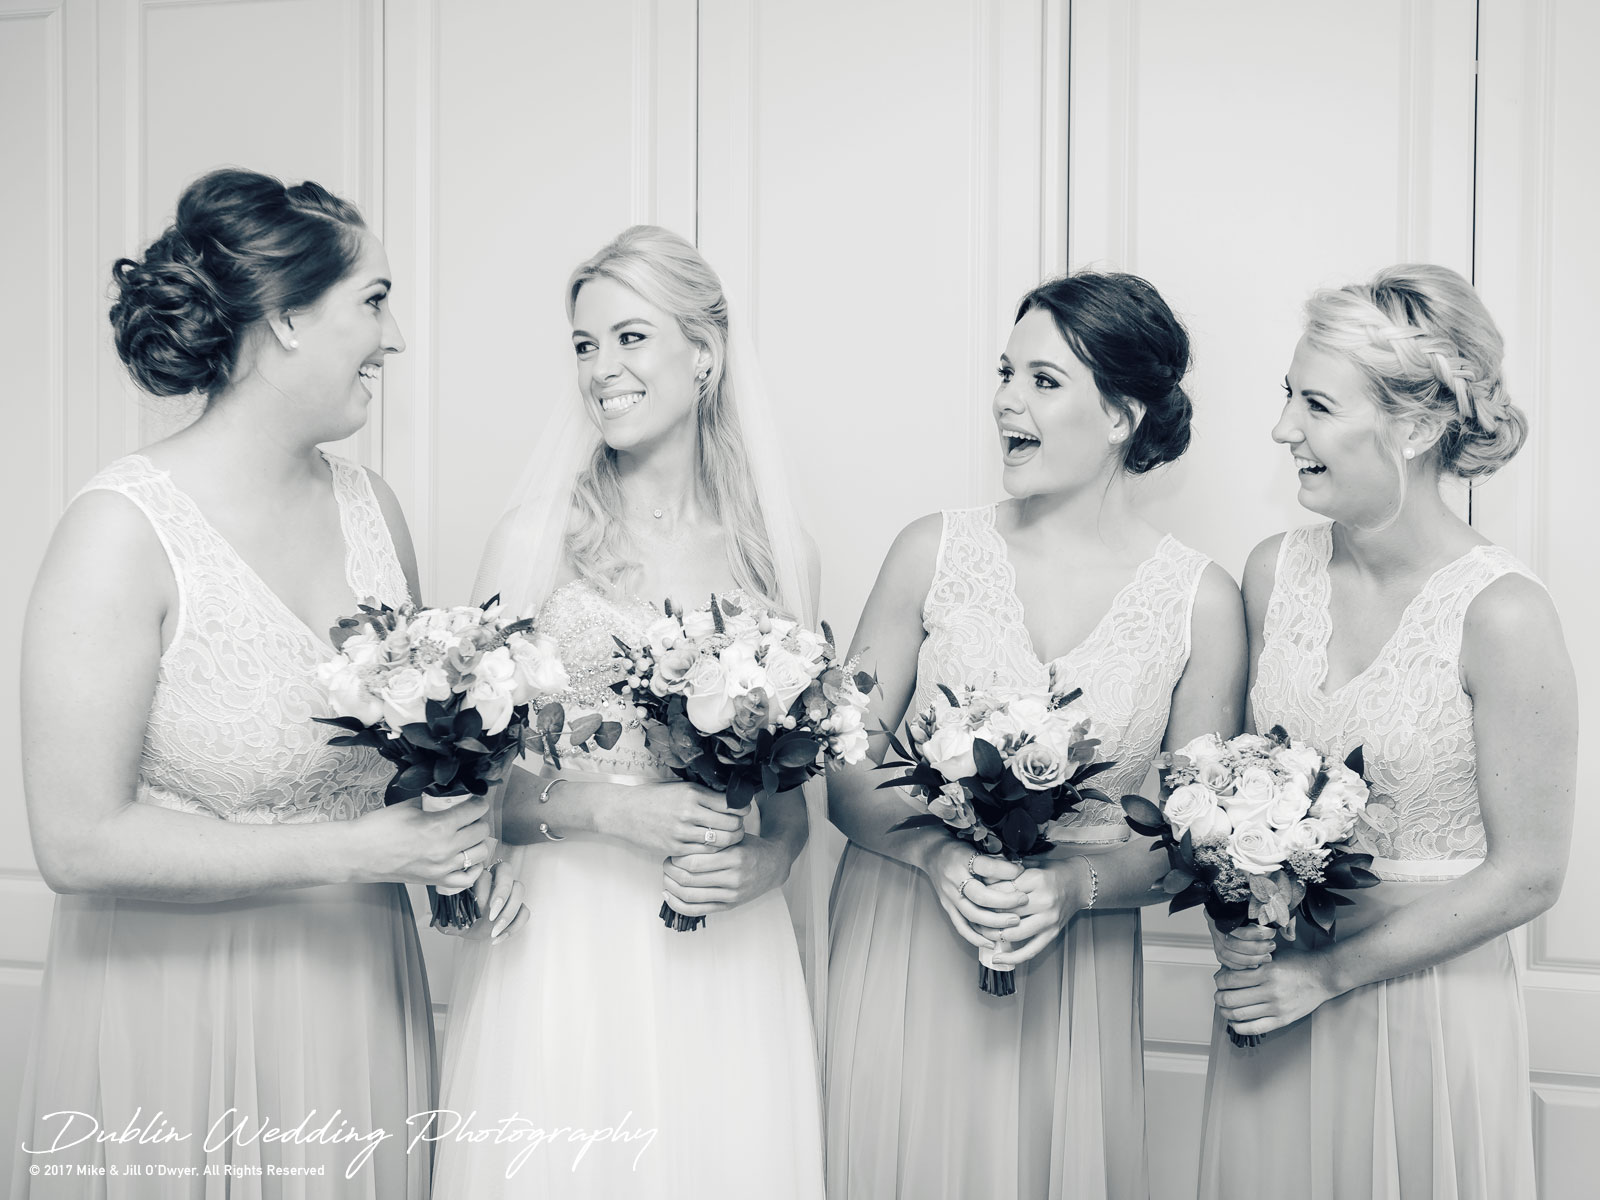 K Club, Kildare, Wedding Photographer, Dublin, Bride and Bridesmaids with bouquets